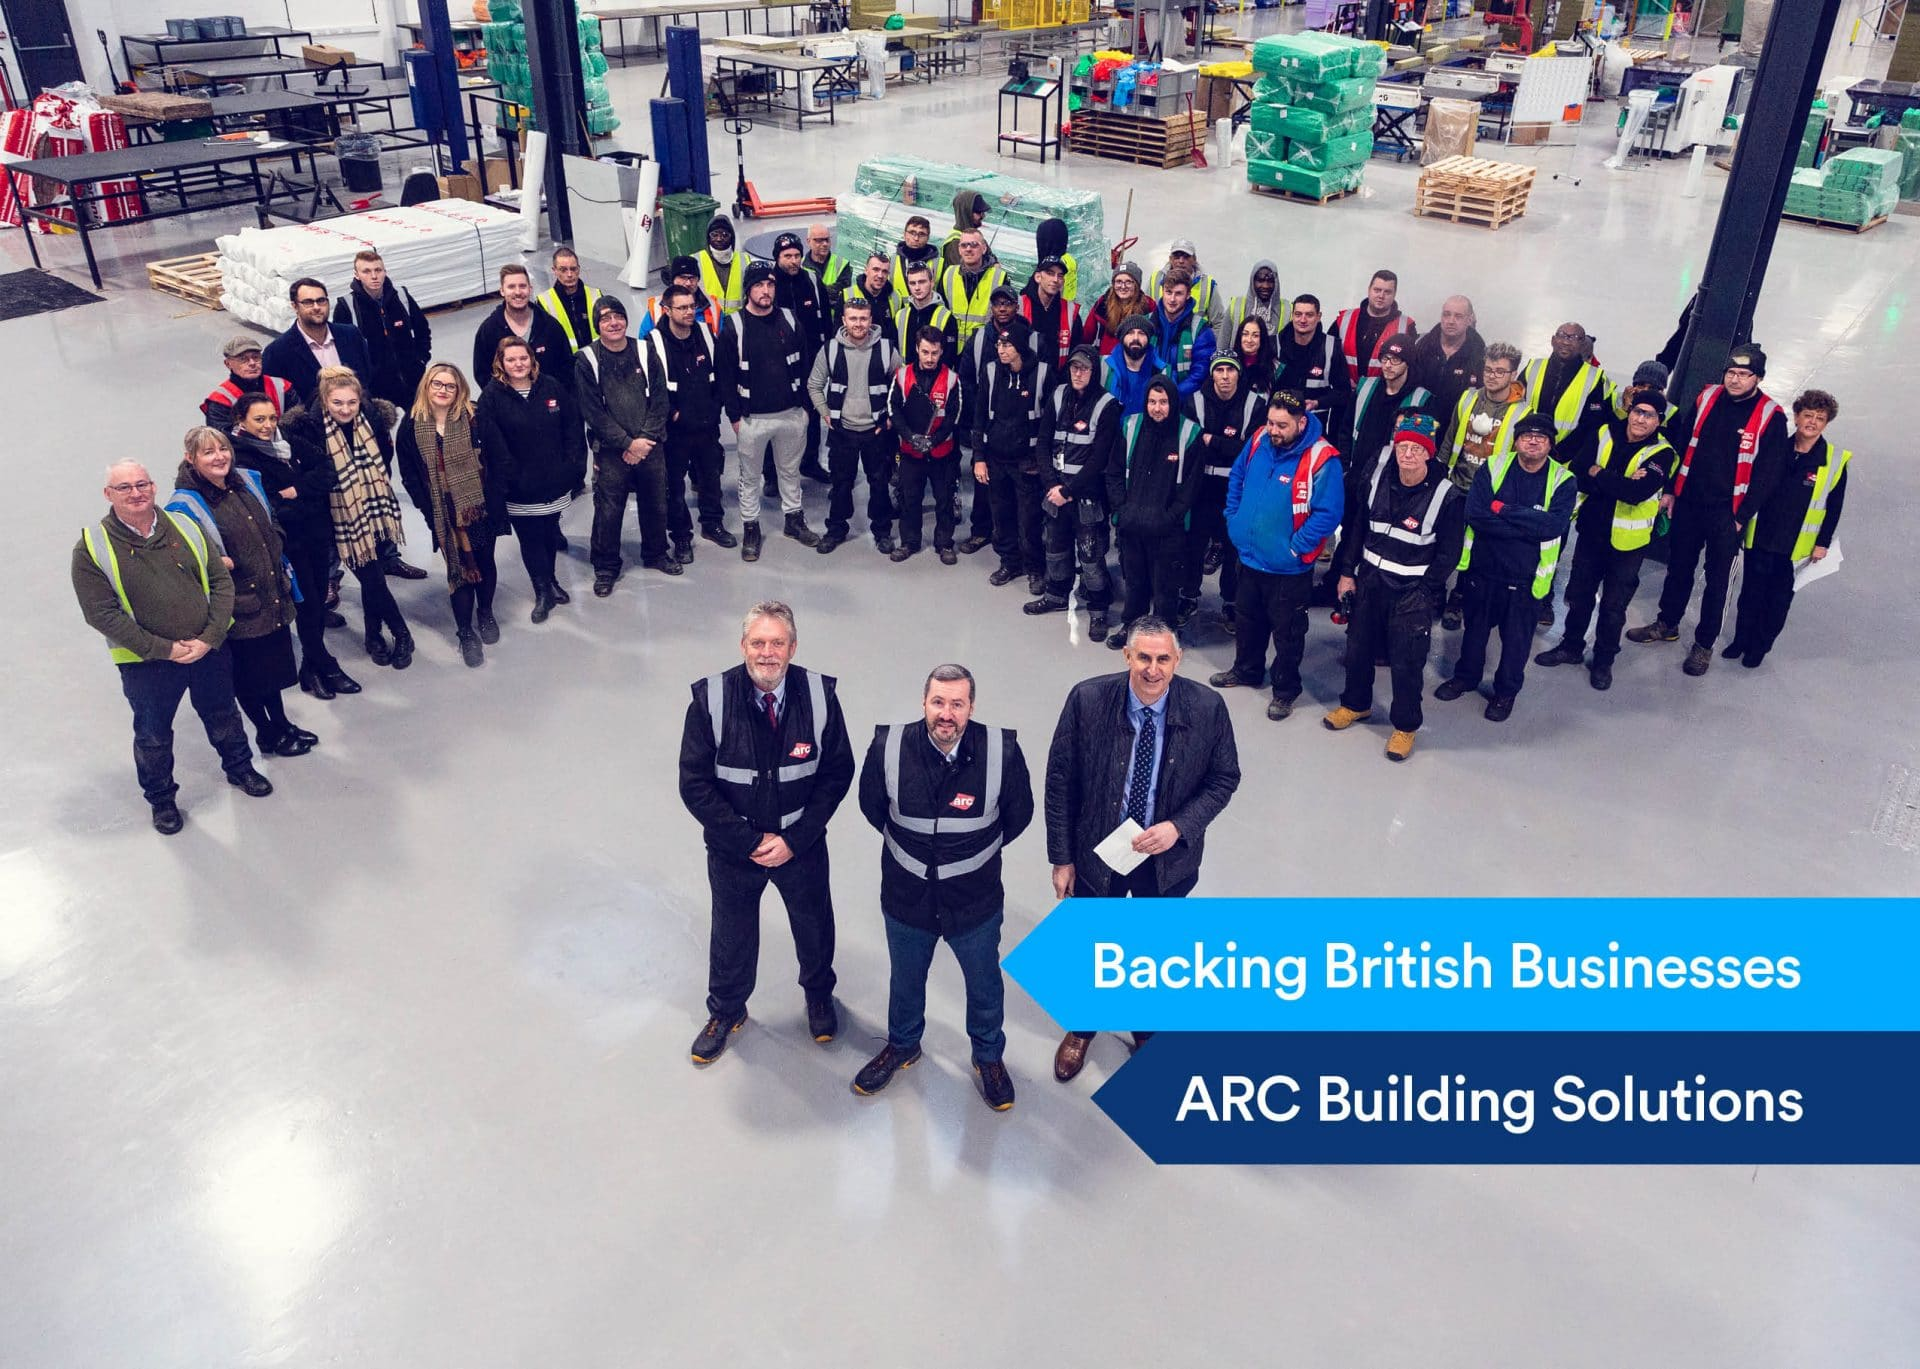 Arc Building Solutions - Backing British Businesses